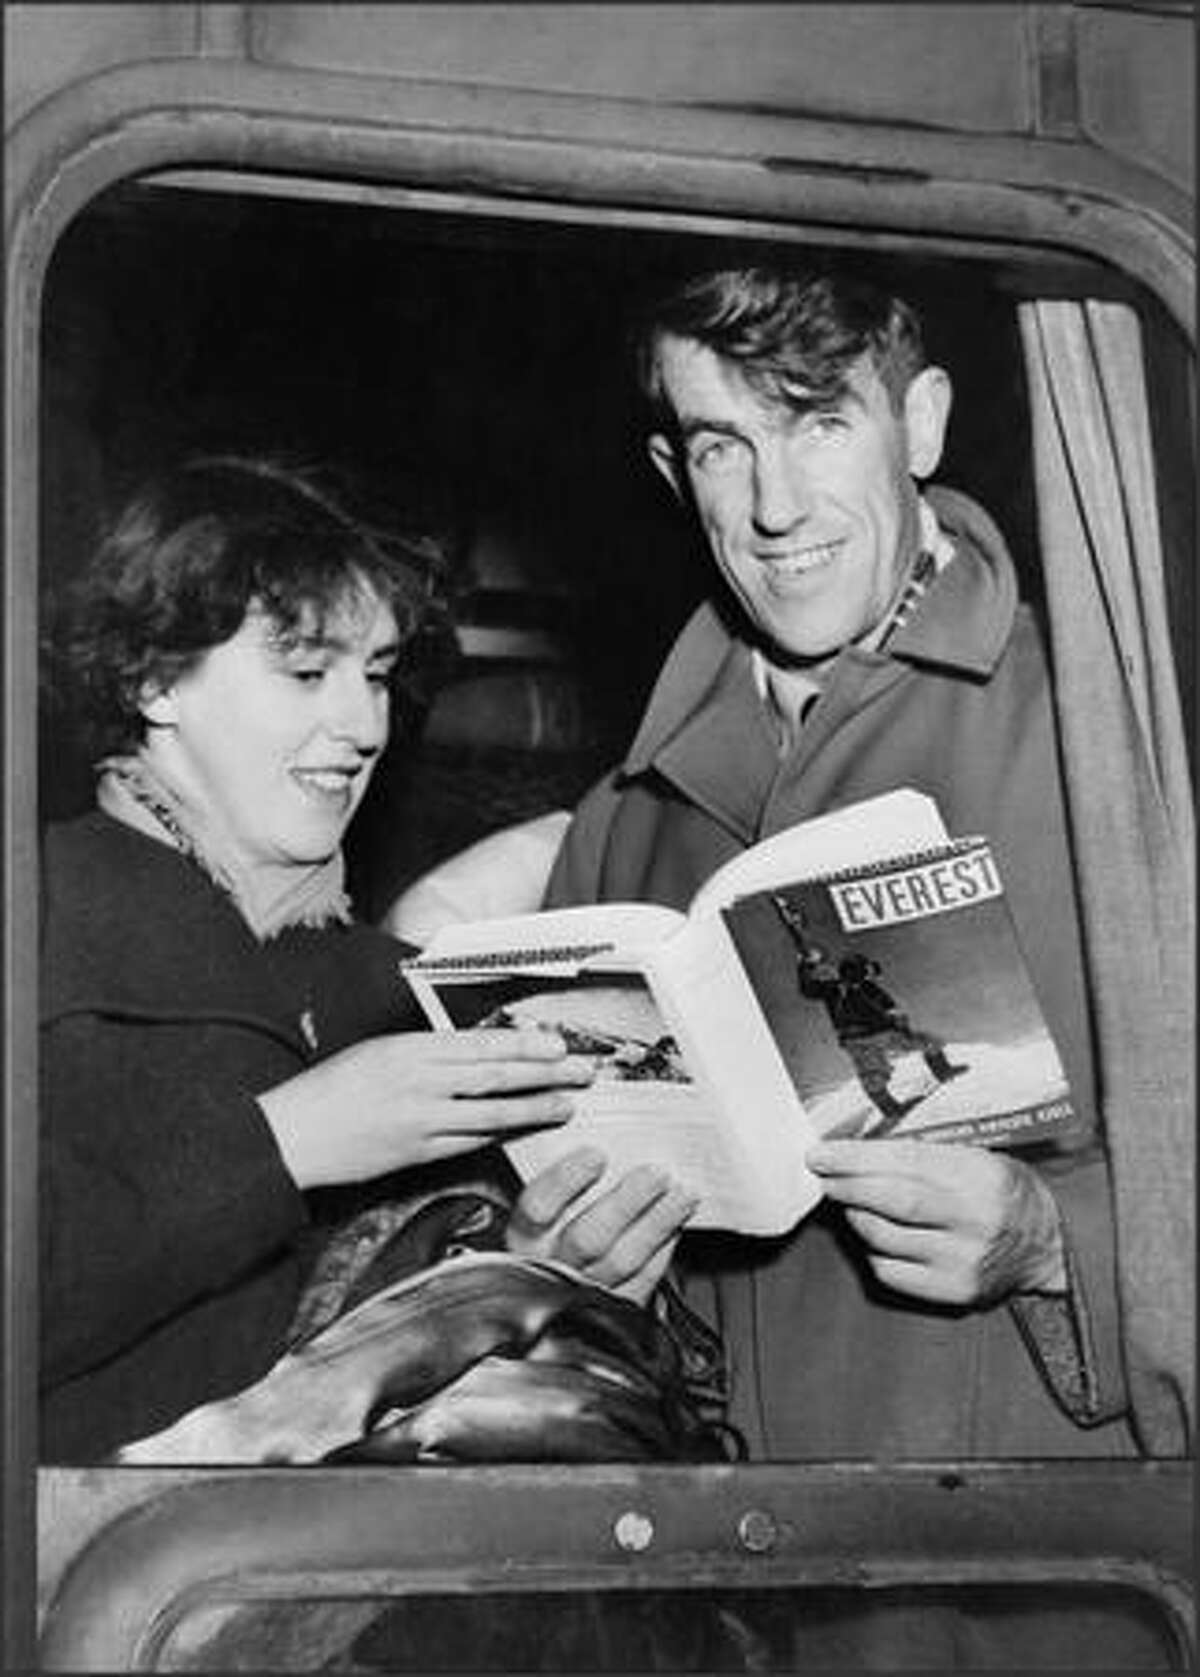 Sir Edmund Hillary and his wife Louise display in January 1954 a book about his victory over Mt. Everest as they arrive by train in Val D'Isere.